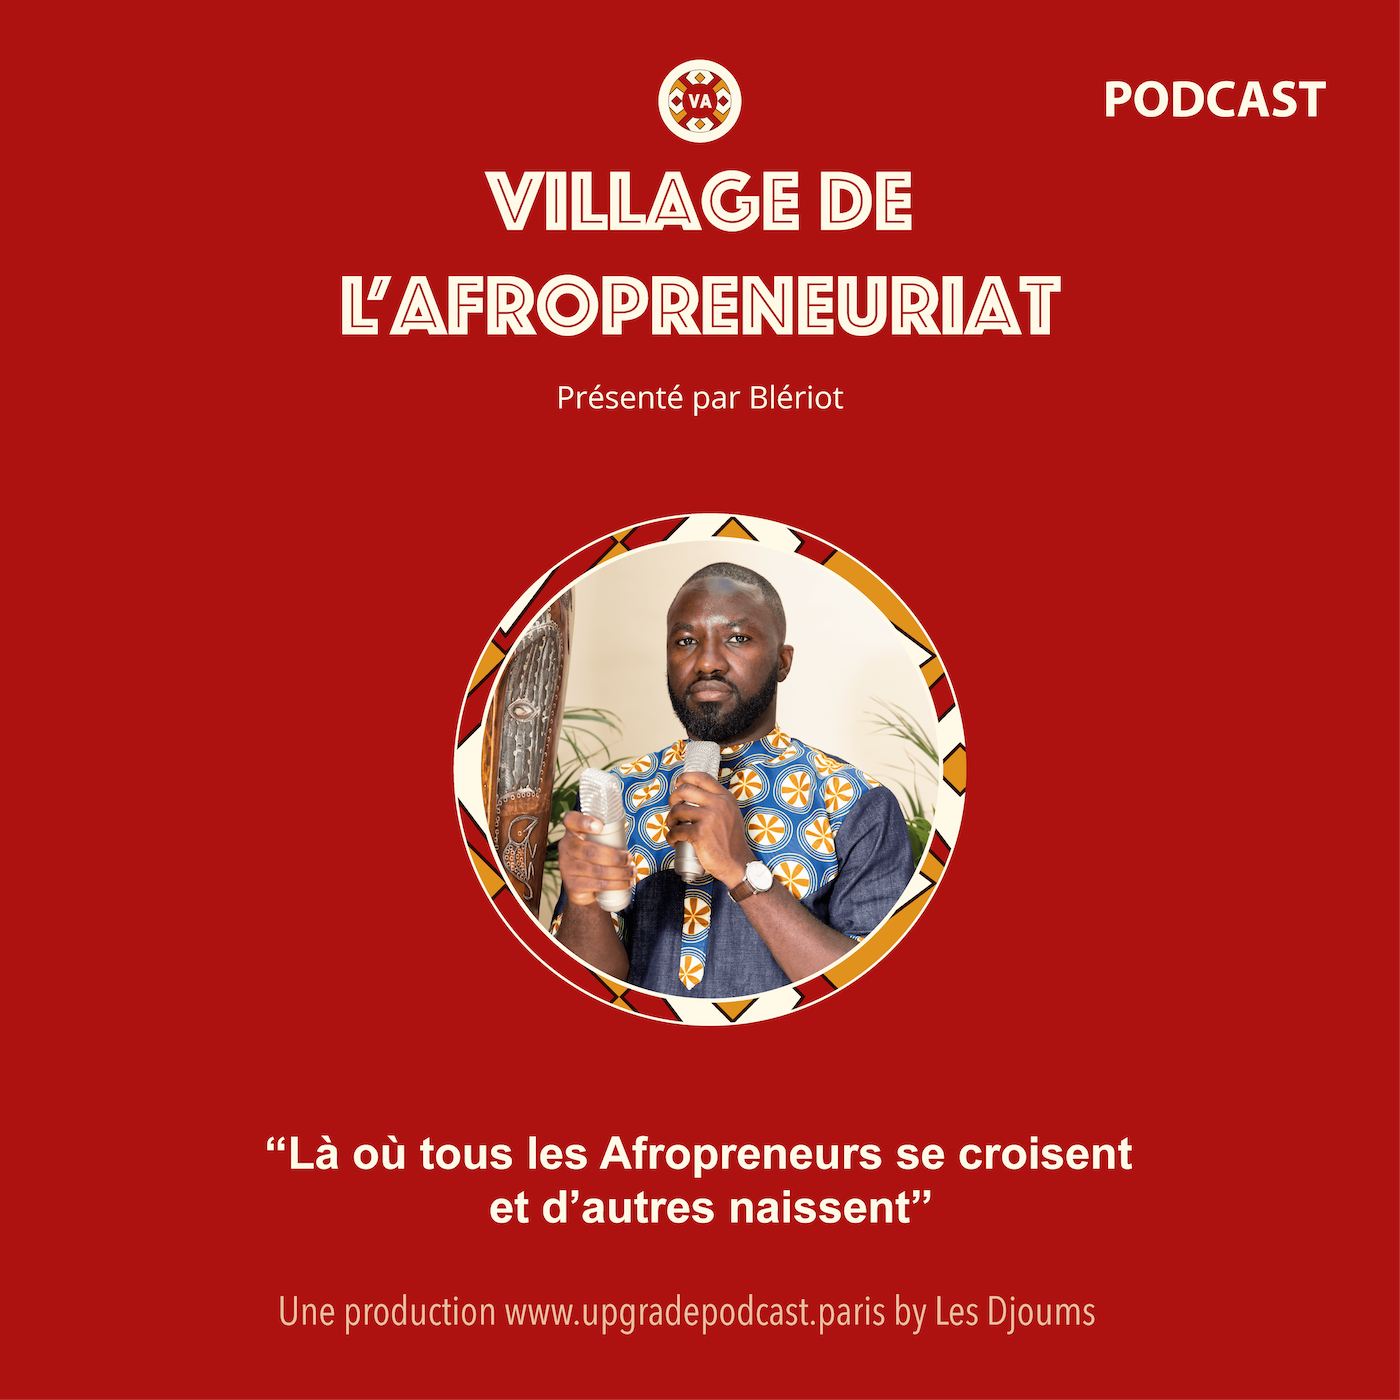 Podcast le Village de l'Afropreneuriat